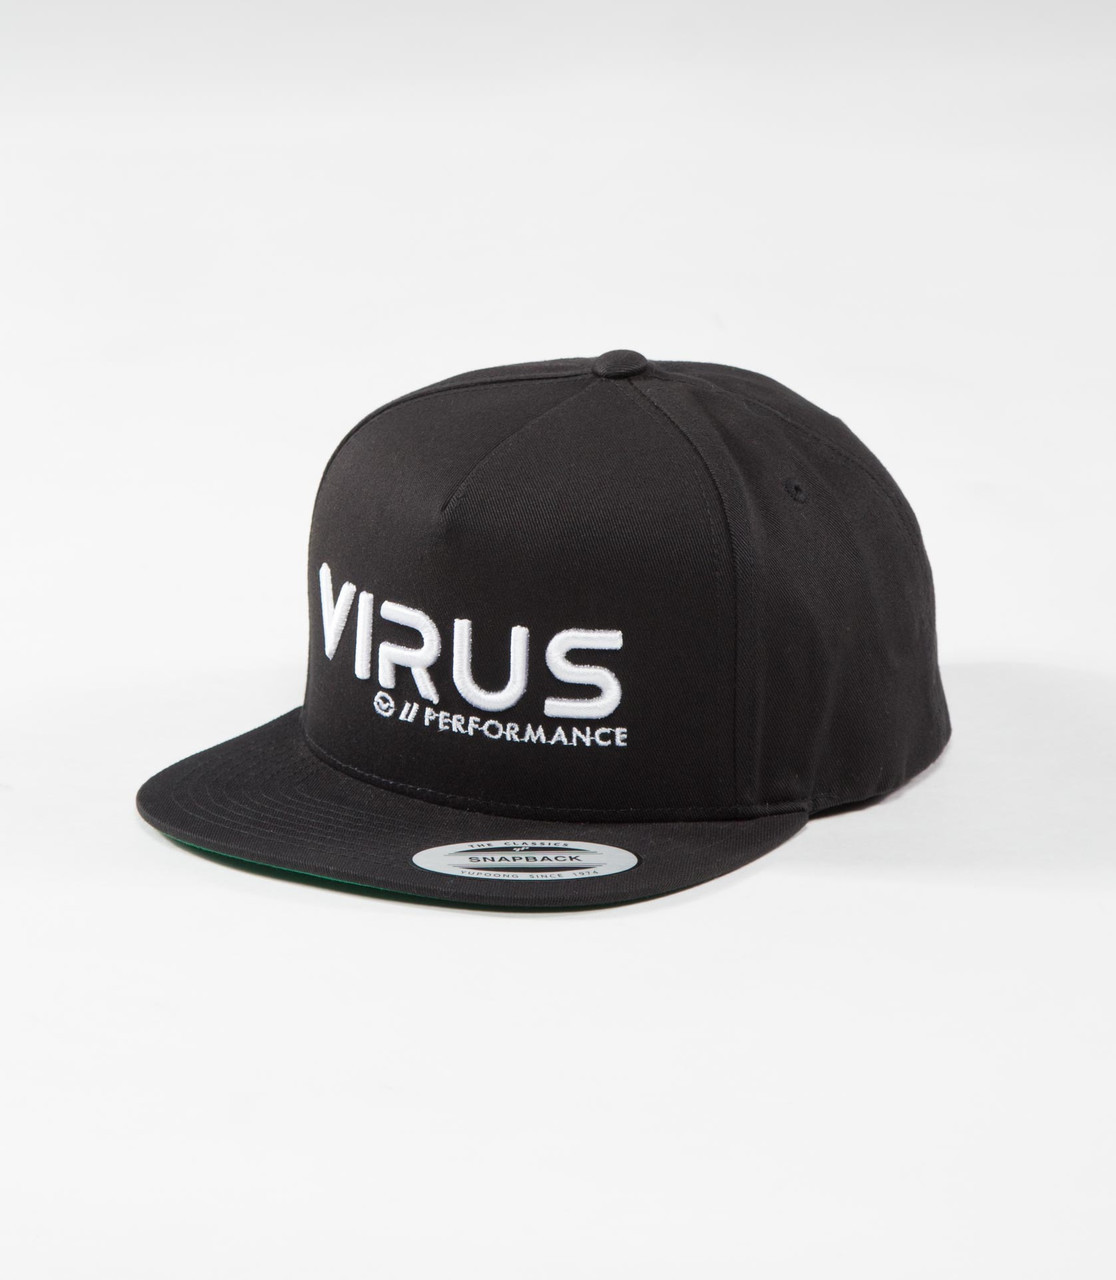 fd0043c77 Virus Performance Snapback Hat UCo12